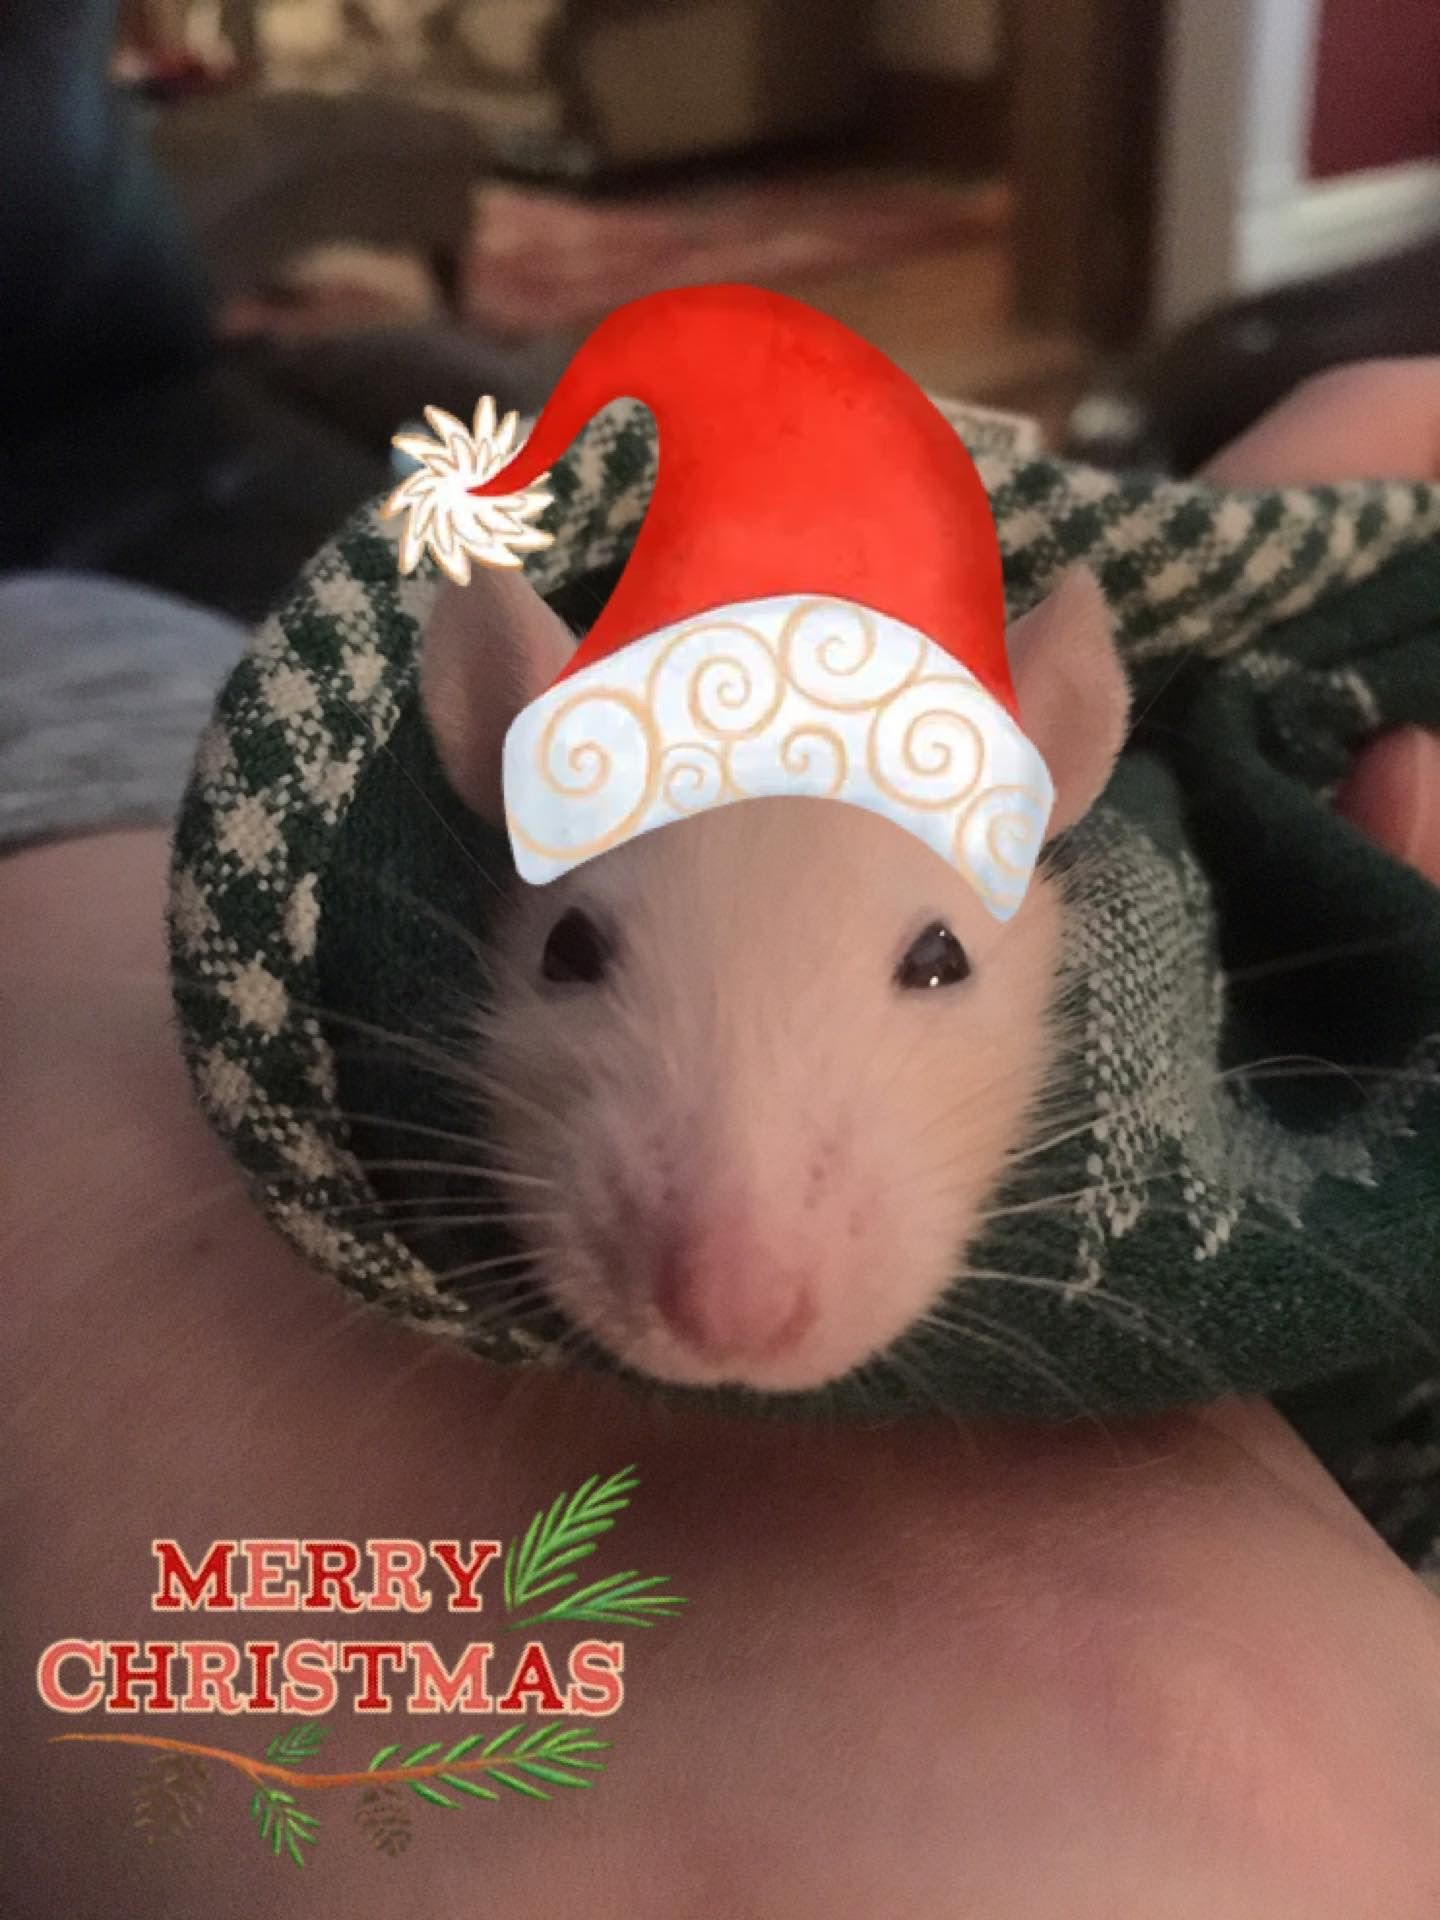 My baby rat-Cookie (born around the holidays. He's such a snuggler, loves being wrapped up like a burrito.